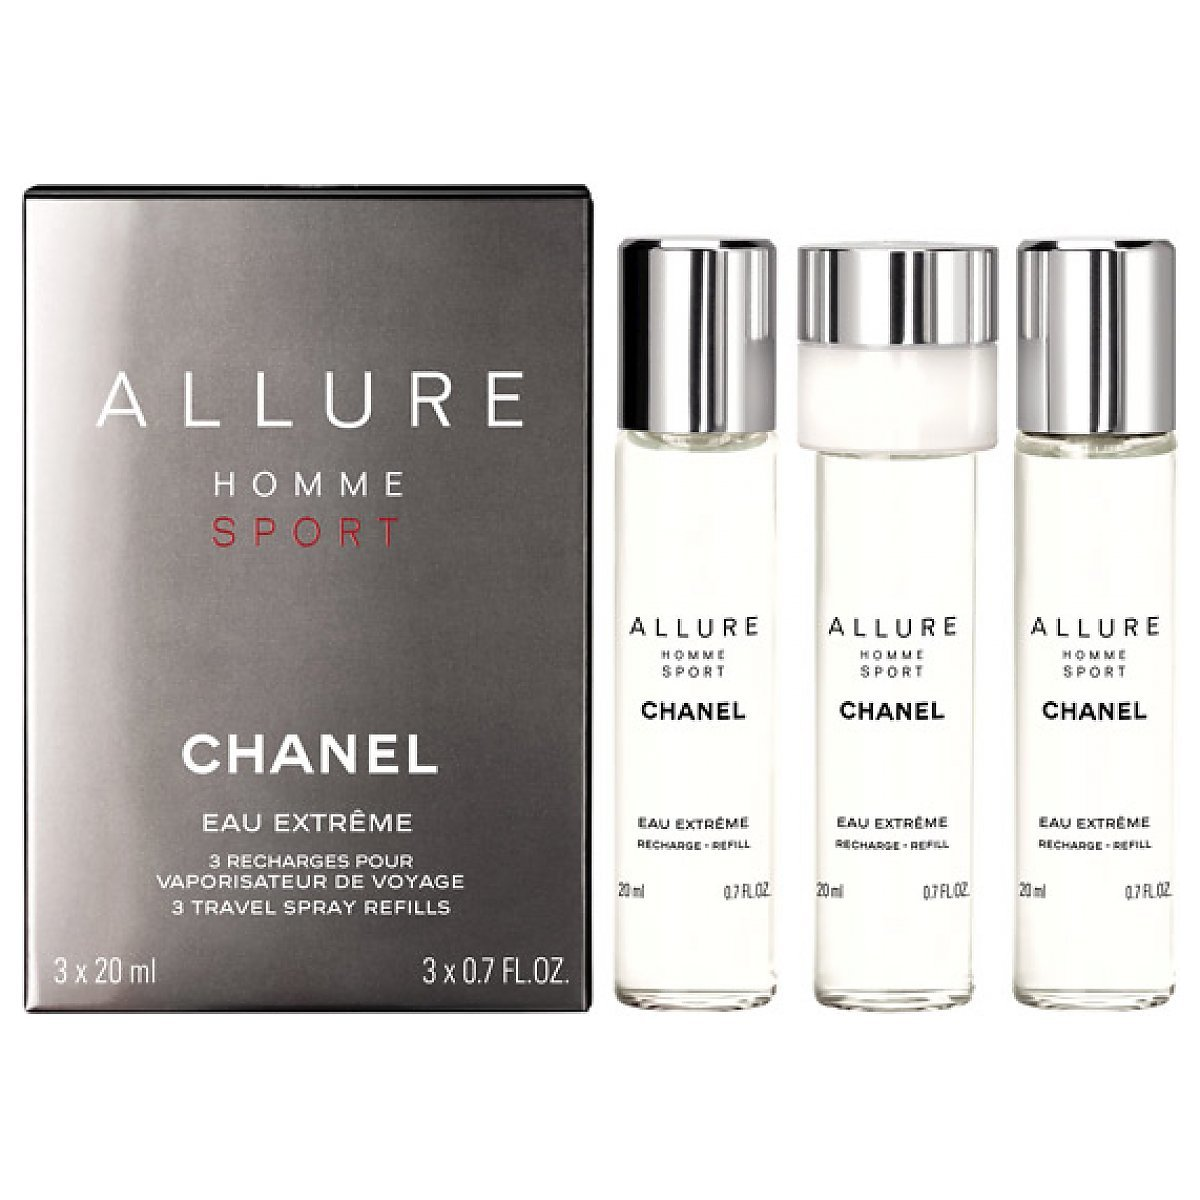 Allure Homme Sport Chanel Allure Homme Sport Eau Extreme Woda Perfumowana 3 X